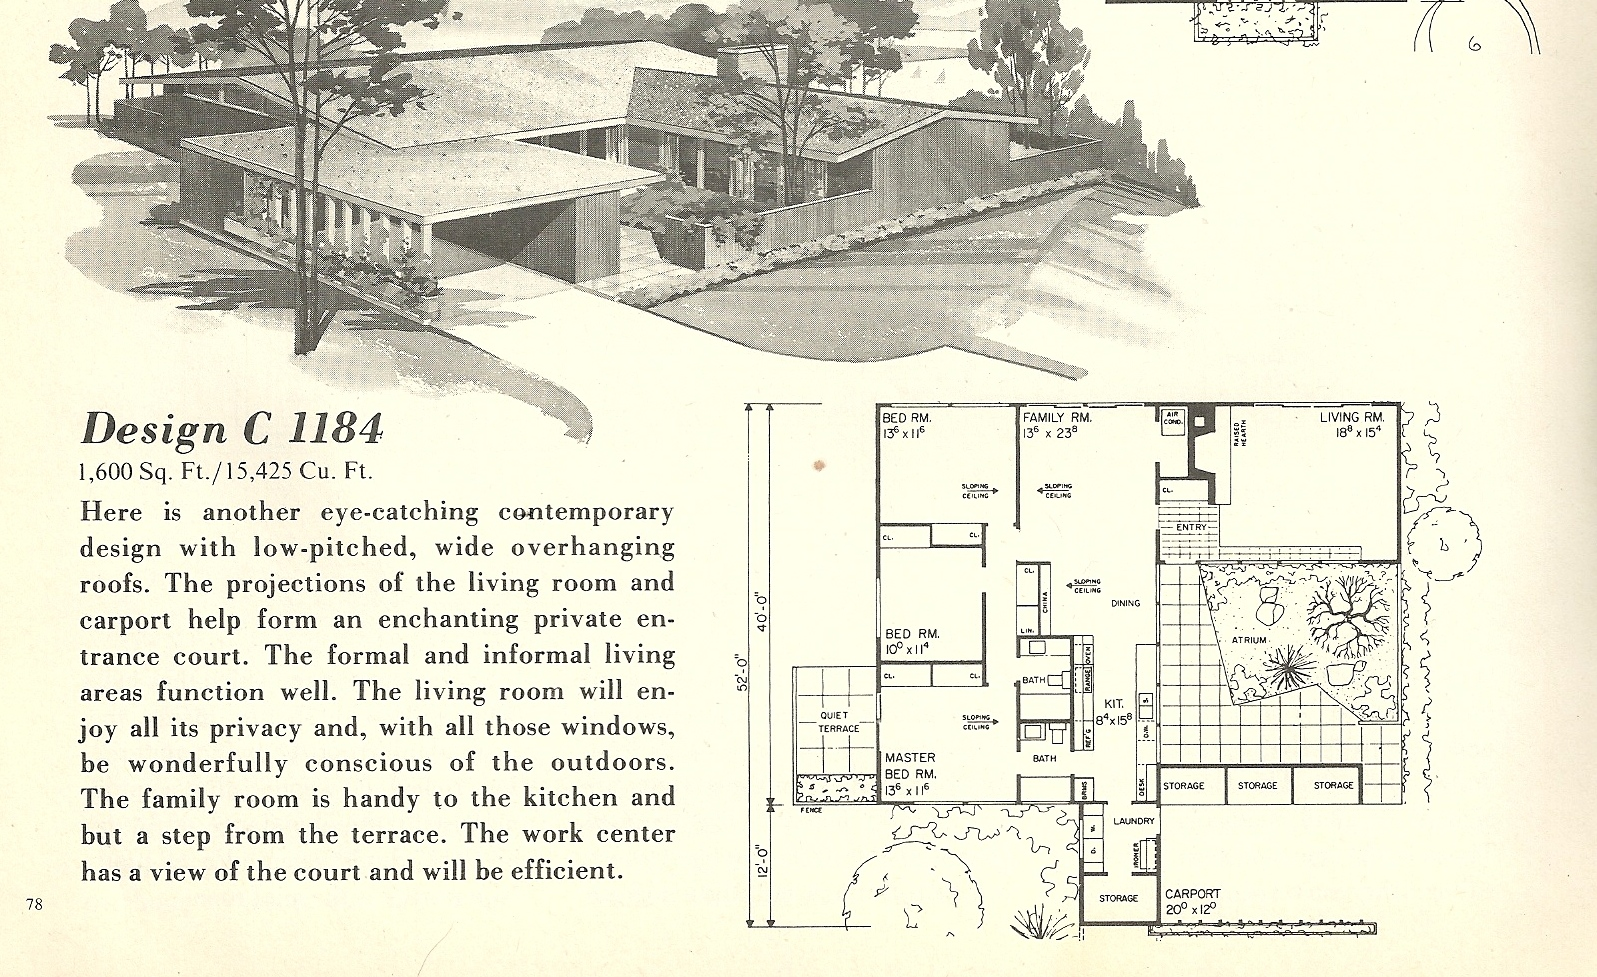 Vintage house plans 1184 antique alter ego for Vintage home plans